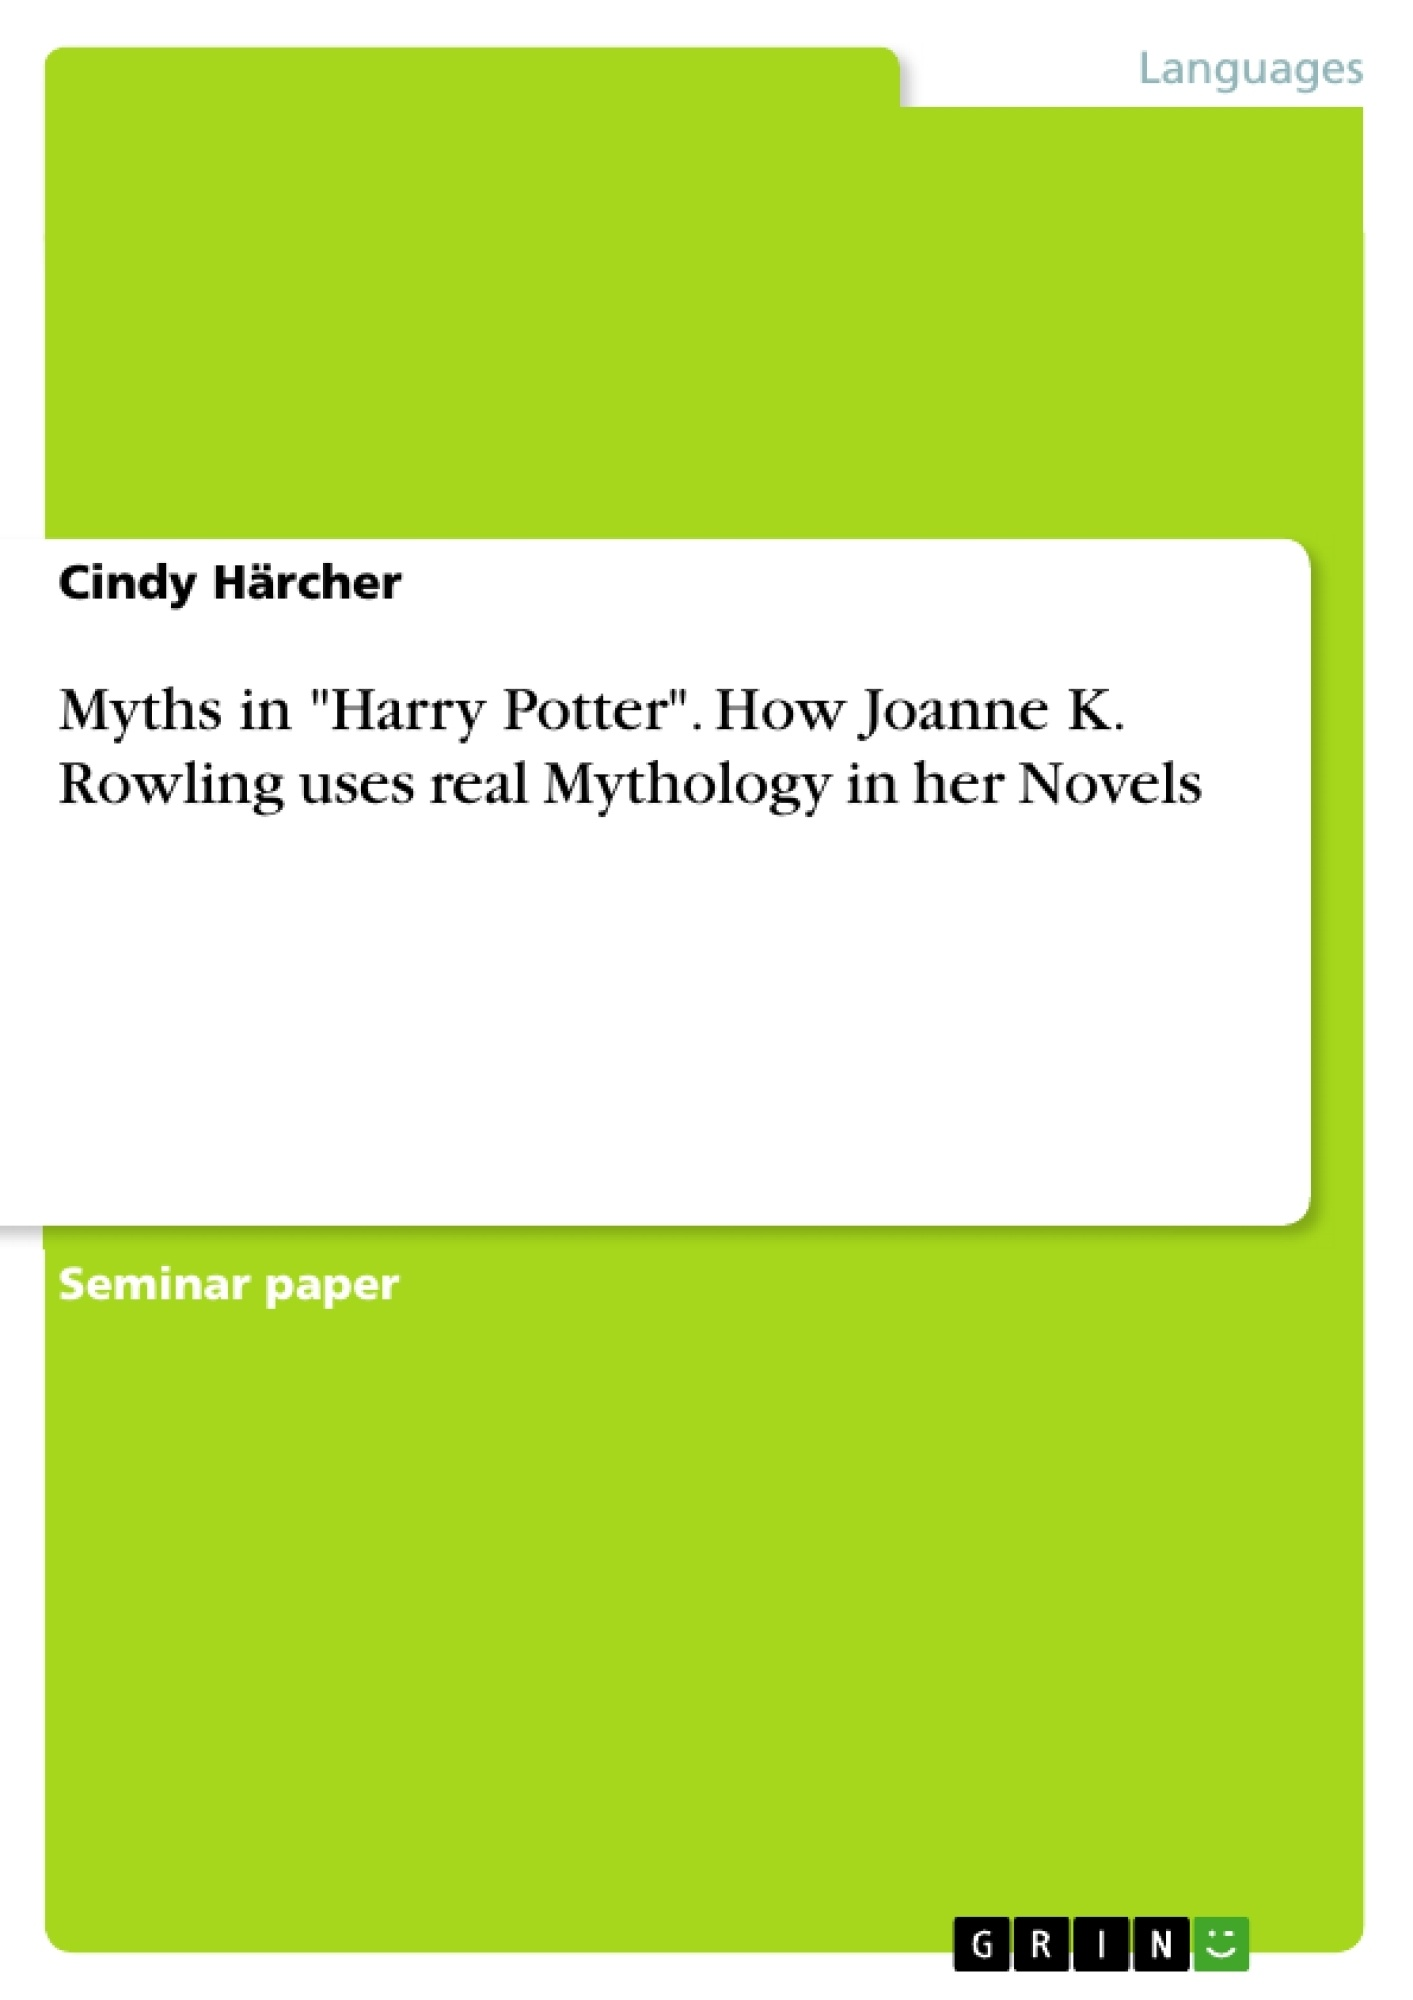 myths in harry potter how joanne k rowling uses real mythology upload your own papers earn money and win an iphone 7